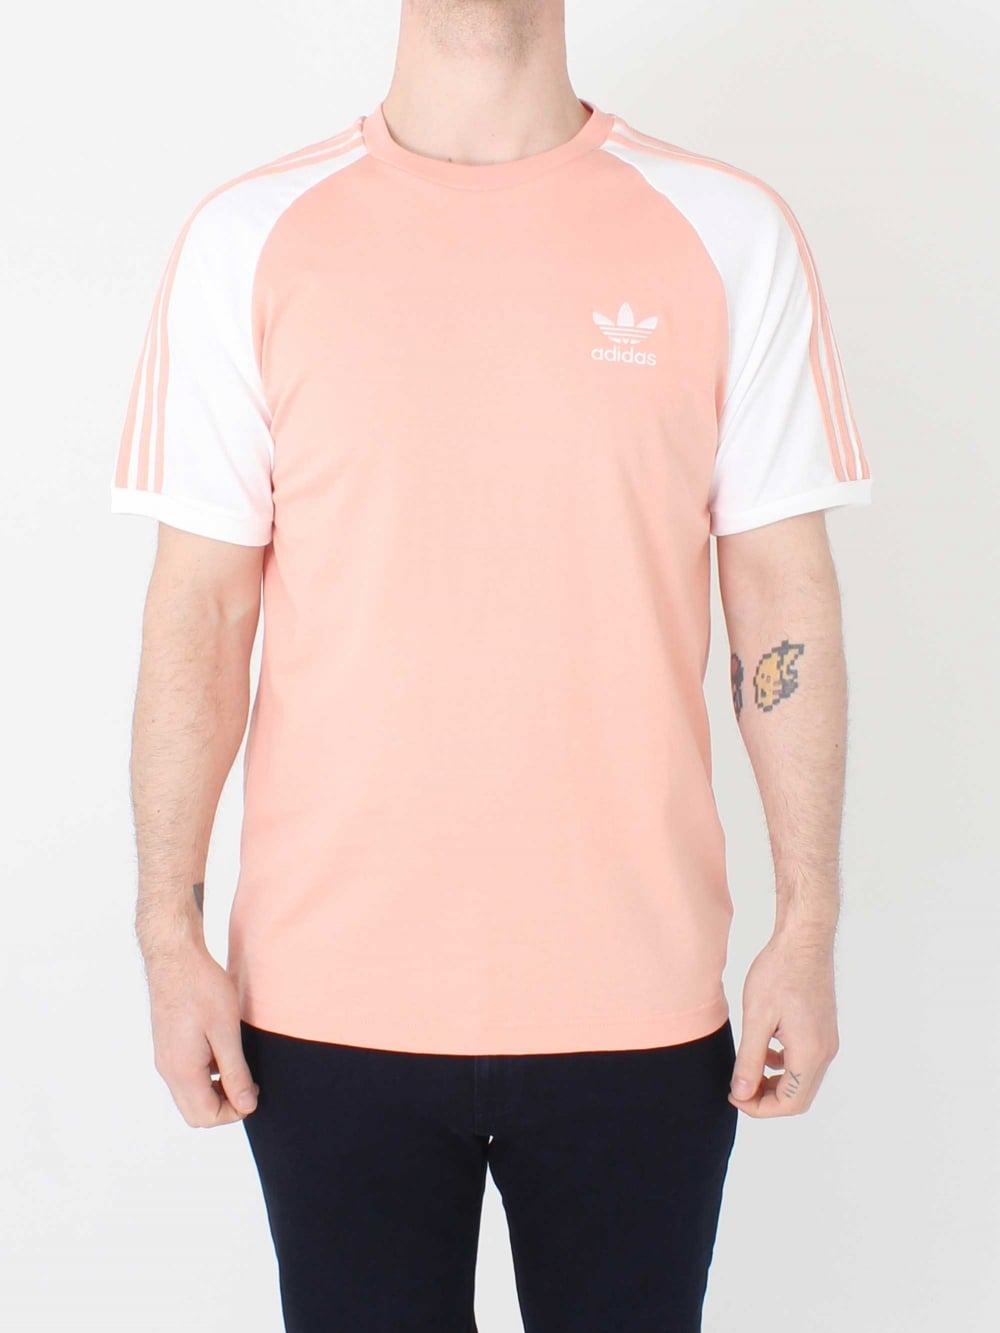 770e5b5262 Adidas 3 Stripes T.Shirt in Pink | Northern Threads